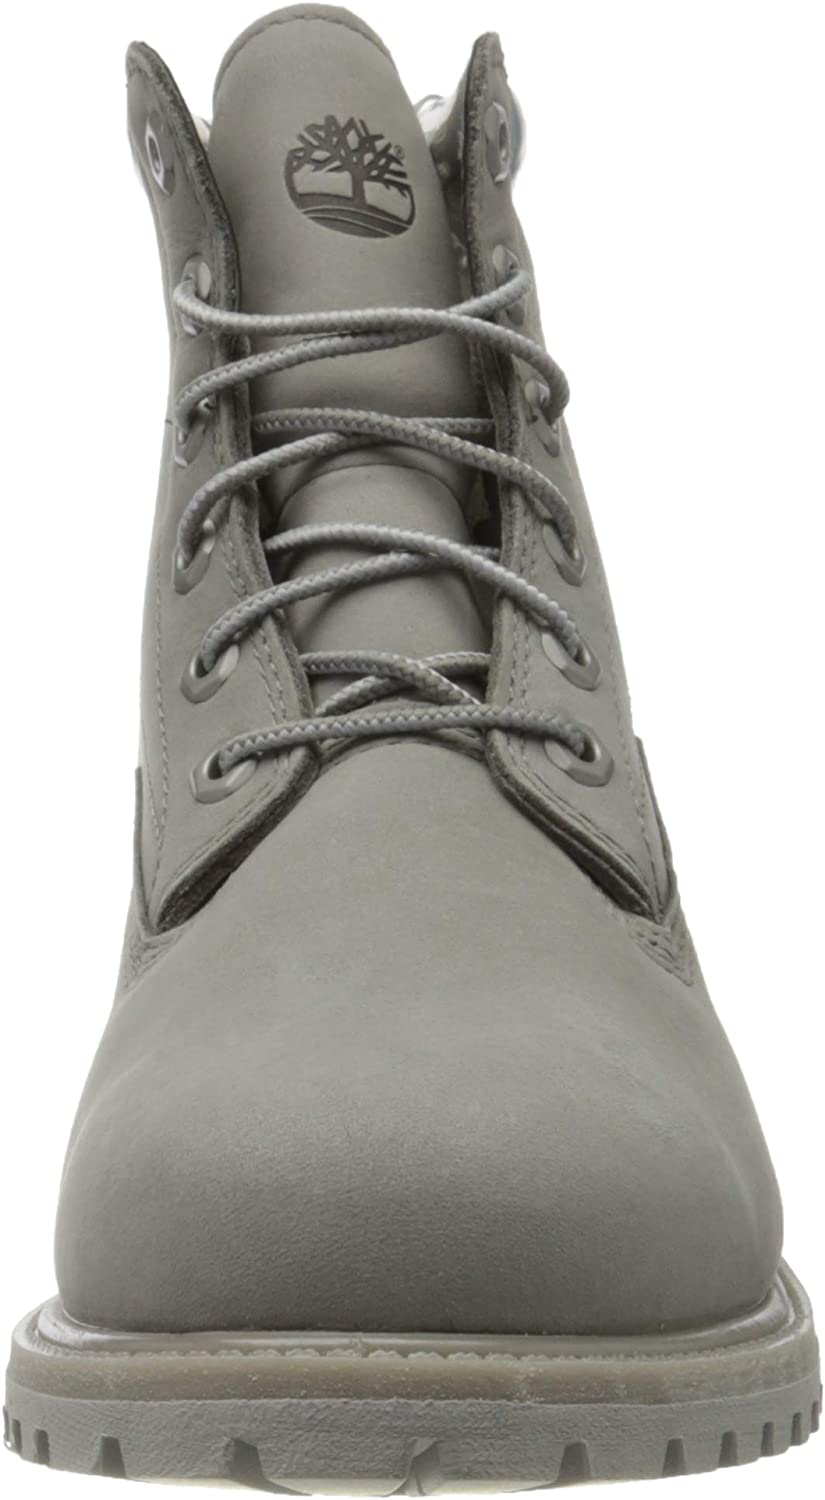 Timberland #A1K38 Women's shoes Ankle Boots buy shoes at our